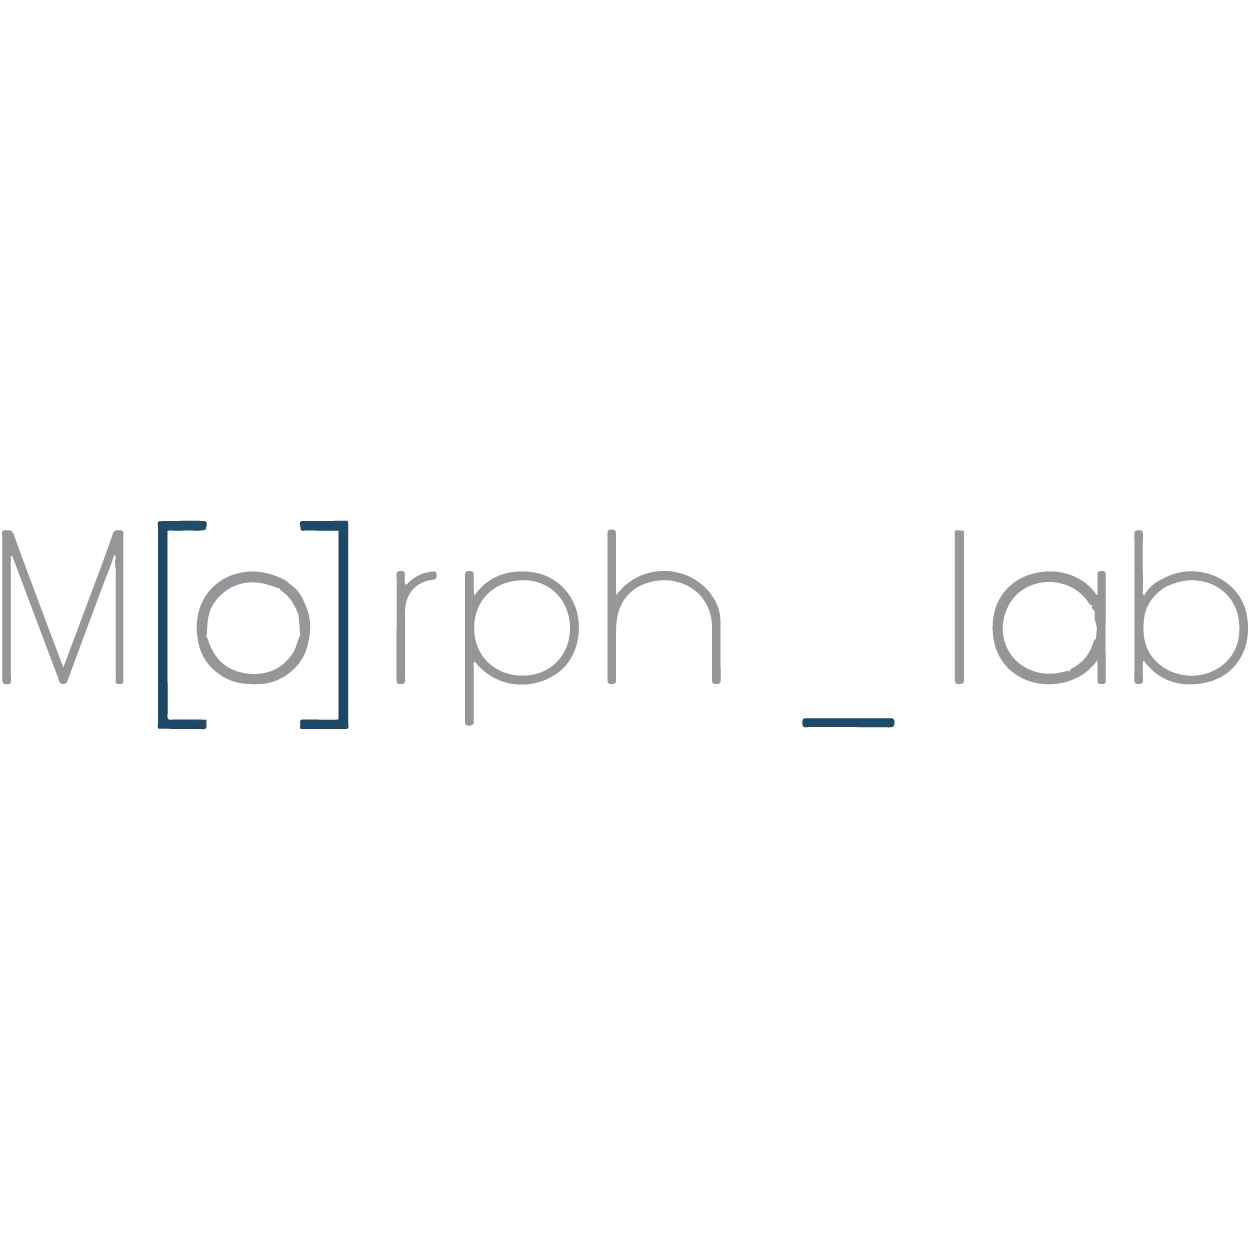 MorphLab   // India   Associate Partner  Is a Mumbai-based practice comprising of architects and designers who have completed their formal education in EmTech,AA School of architecture, London. The studio sits at the intersection of design and research. Primarily focusing on parametric and generative computational design techniques operating within the fields of architecture, urbanism, research and development. Morph Lab aims to optimise the design which is responsive to its environment / function / user and context overall with which they have executed projects national and internationally.